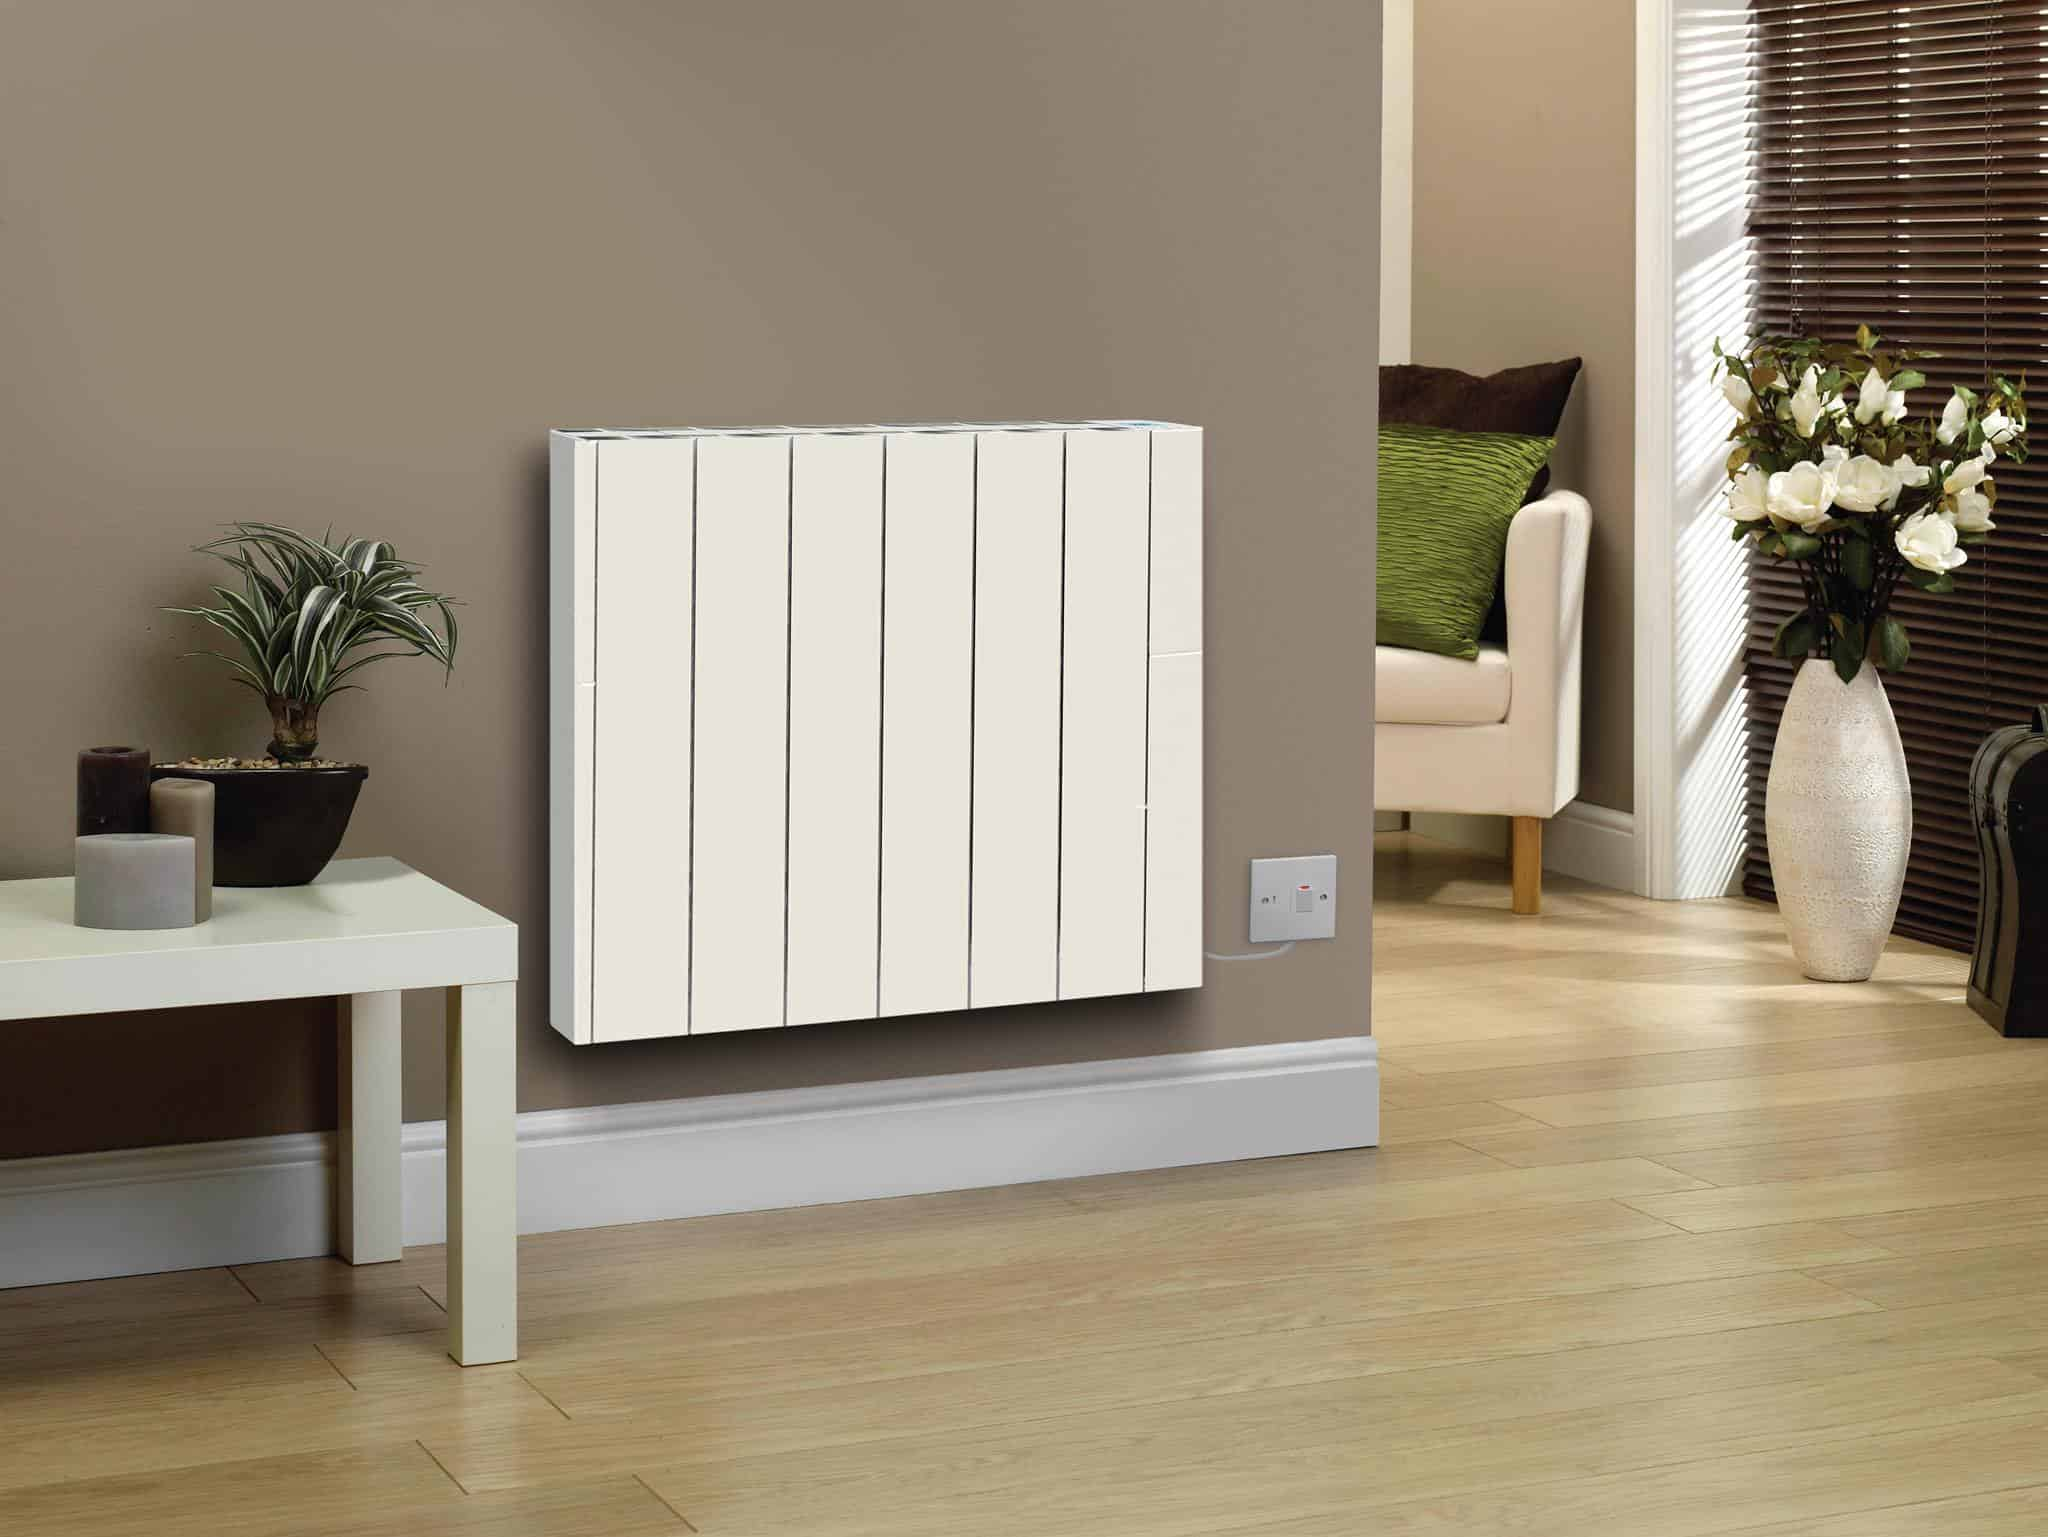 Wifi Controlled Wall Mounted Electric Heaters Glasgow